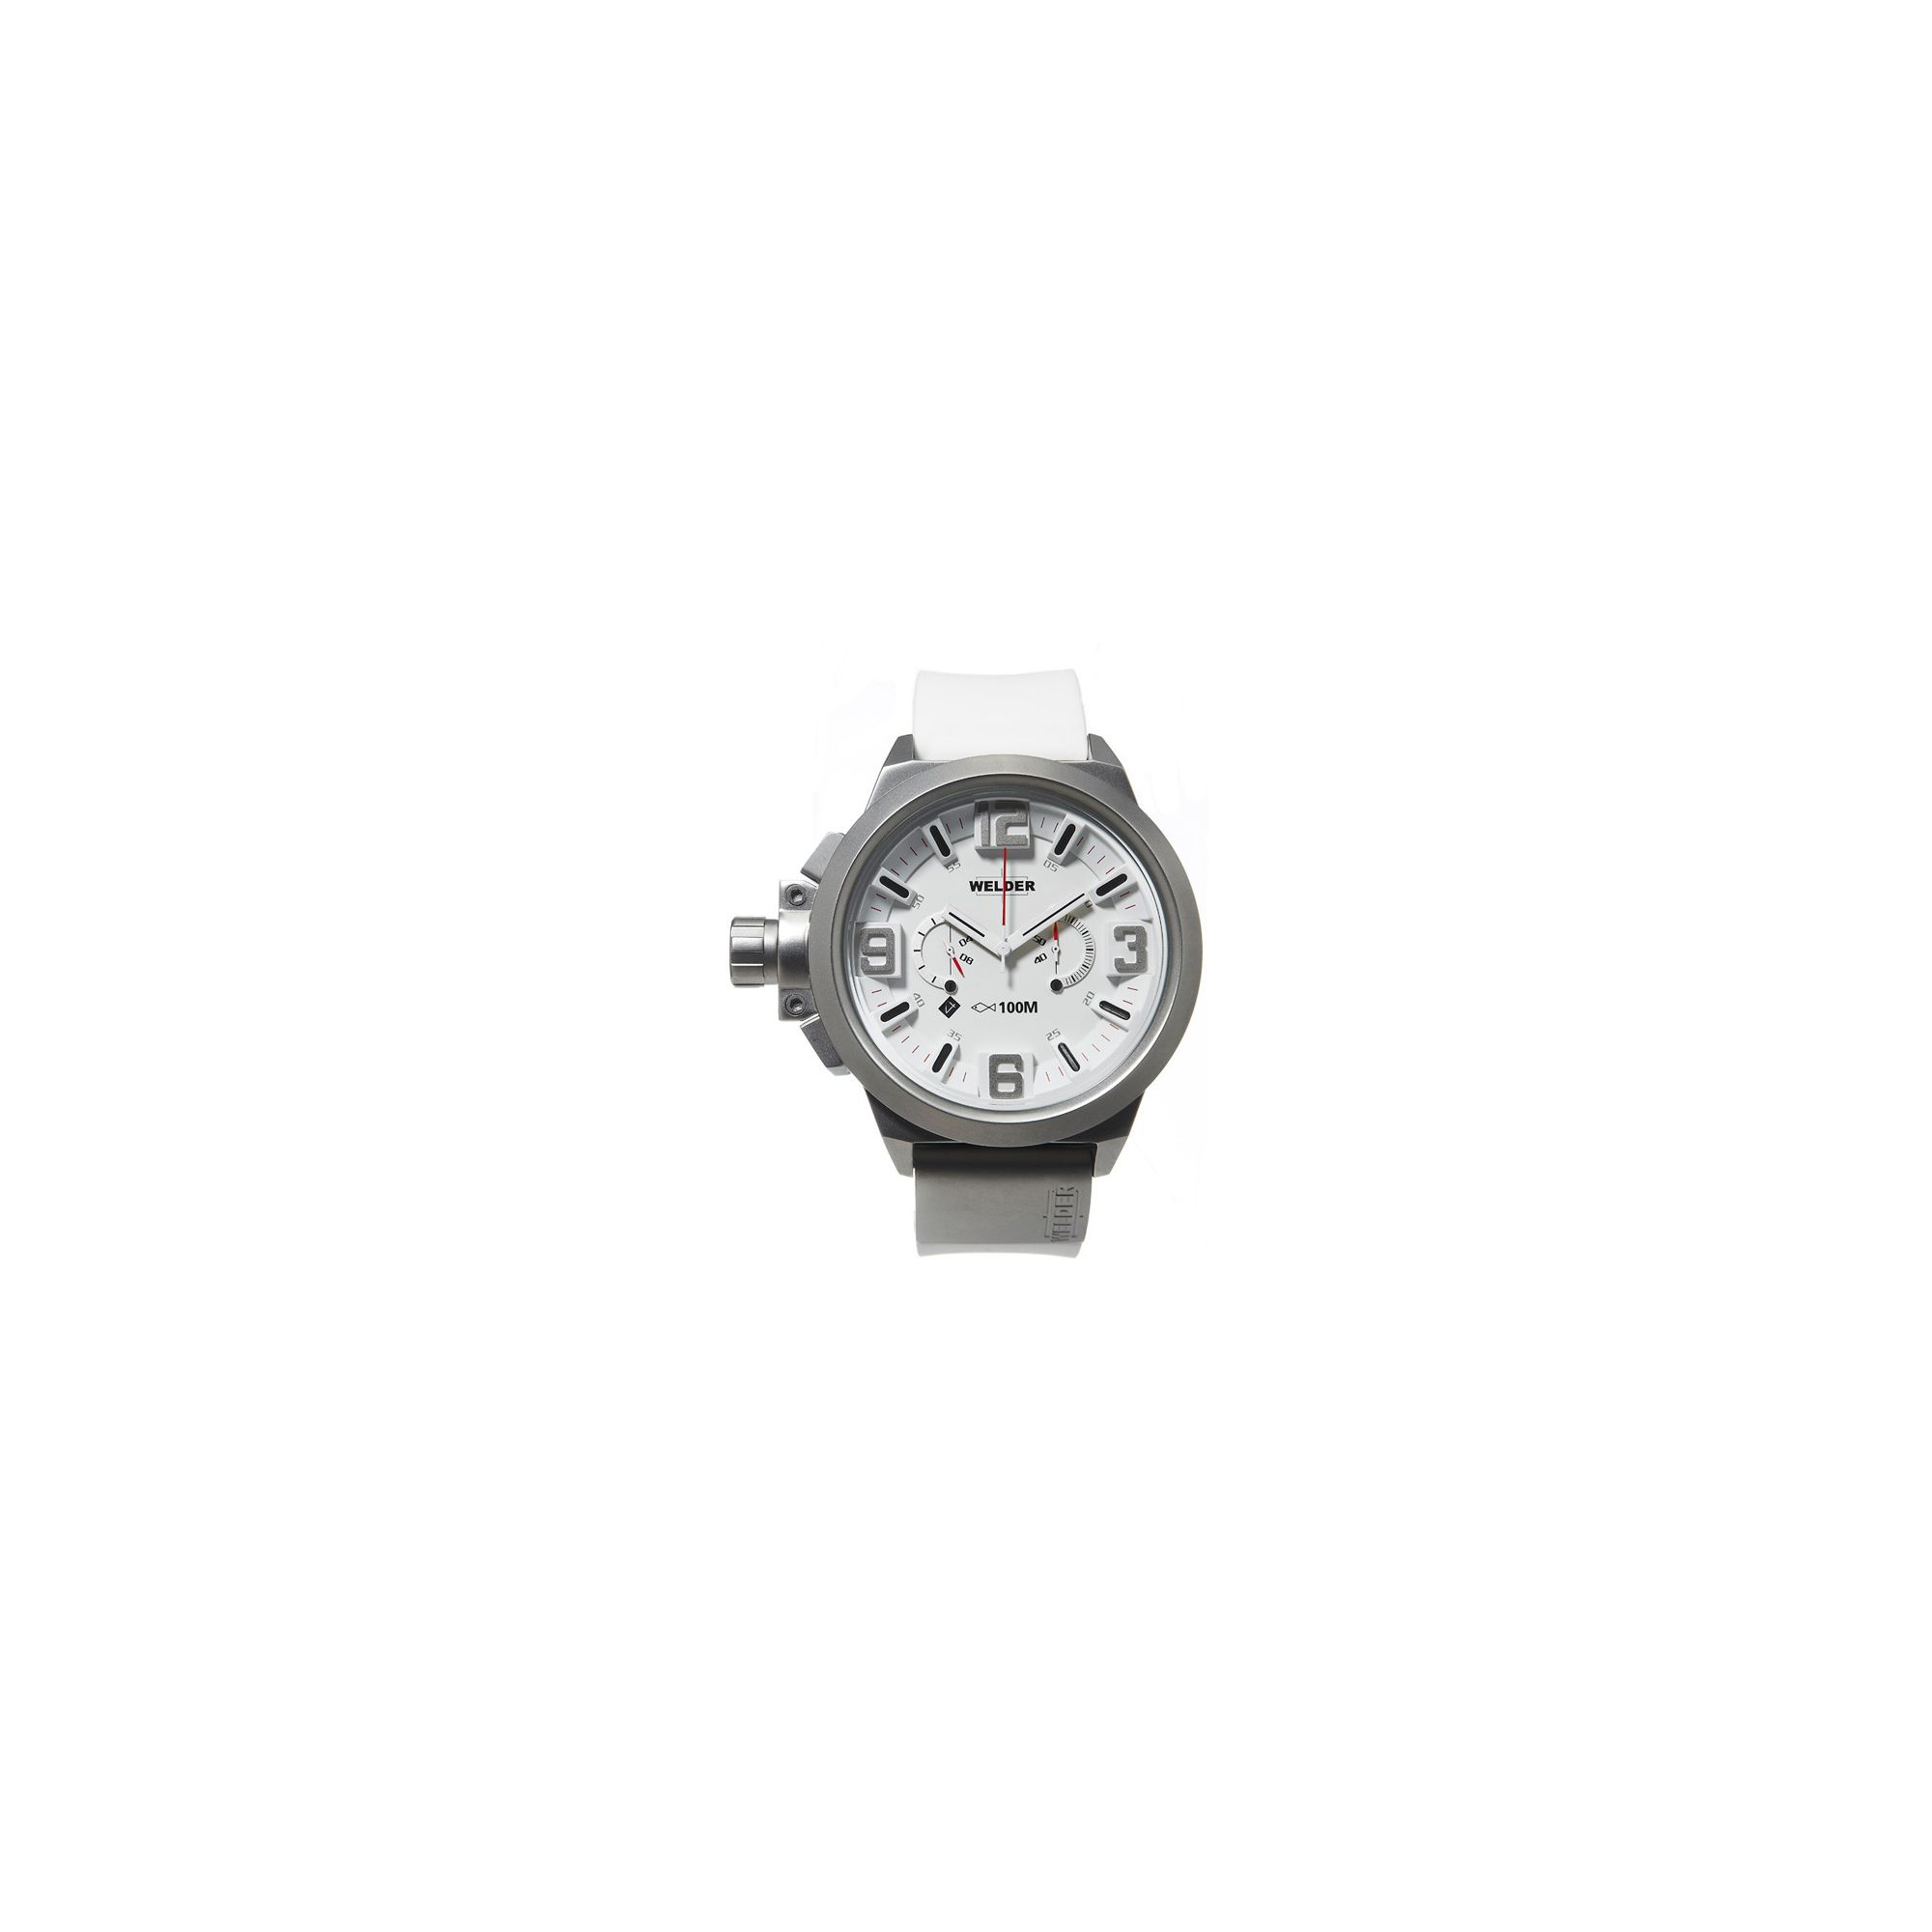 Welder Gents White Dial White Rubber Strap Watch K22-900 at Tesco Direct